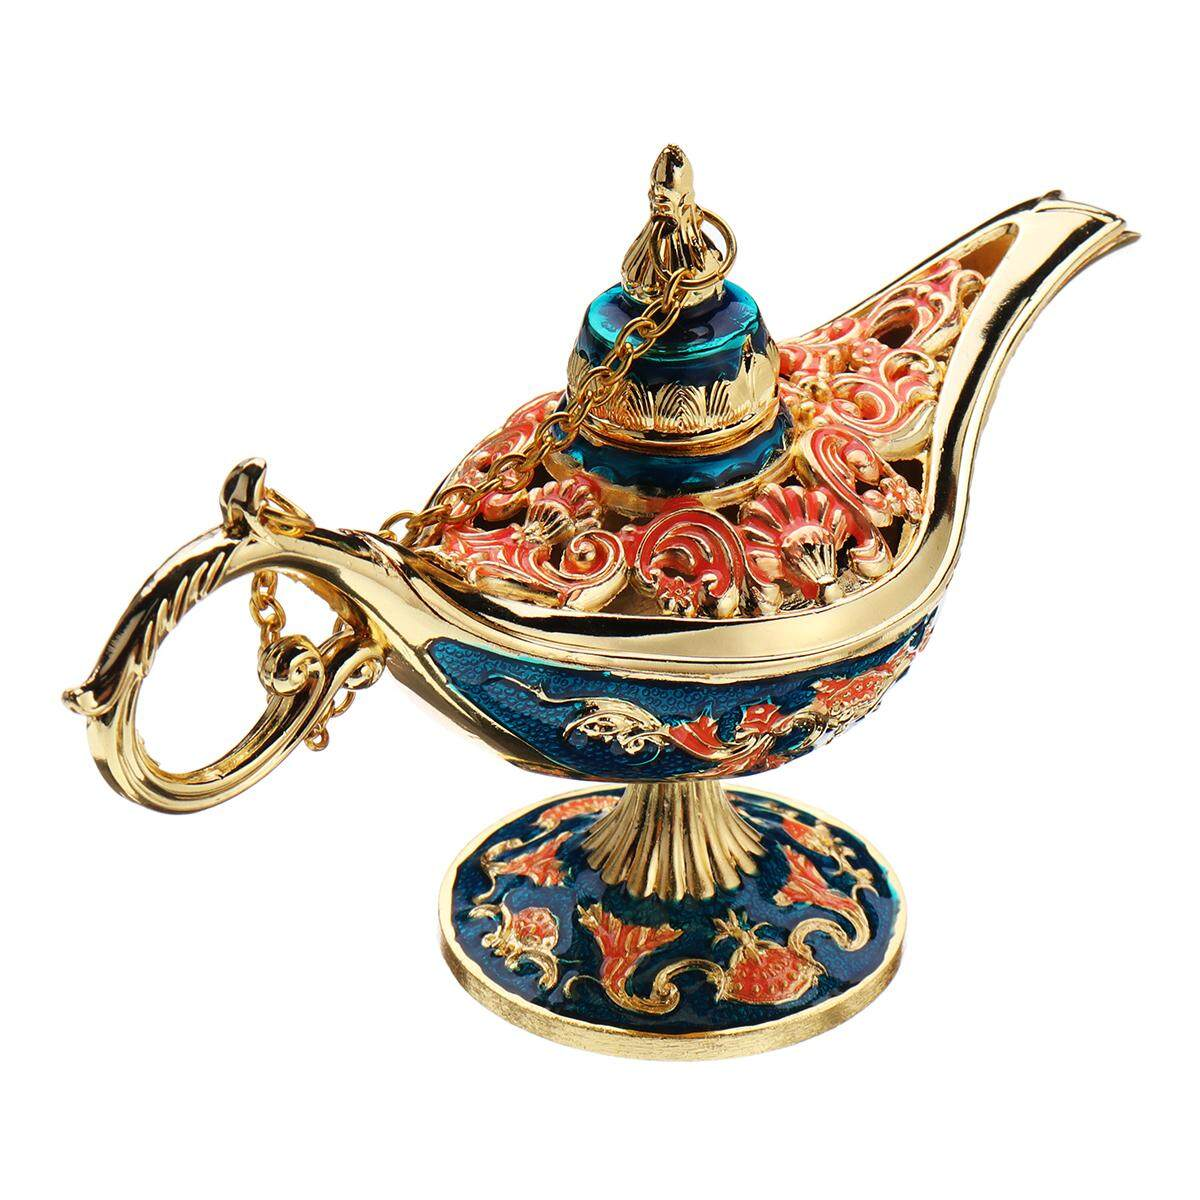 Colorful Metal Aladdin Magic Lamp Retro Wishing Lamp Aladdin Genie Lamp Incense Burner Home Decor Gift Child Toy#Blue gold - intl